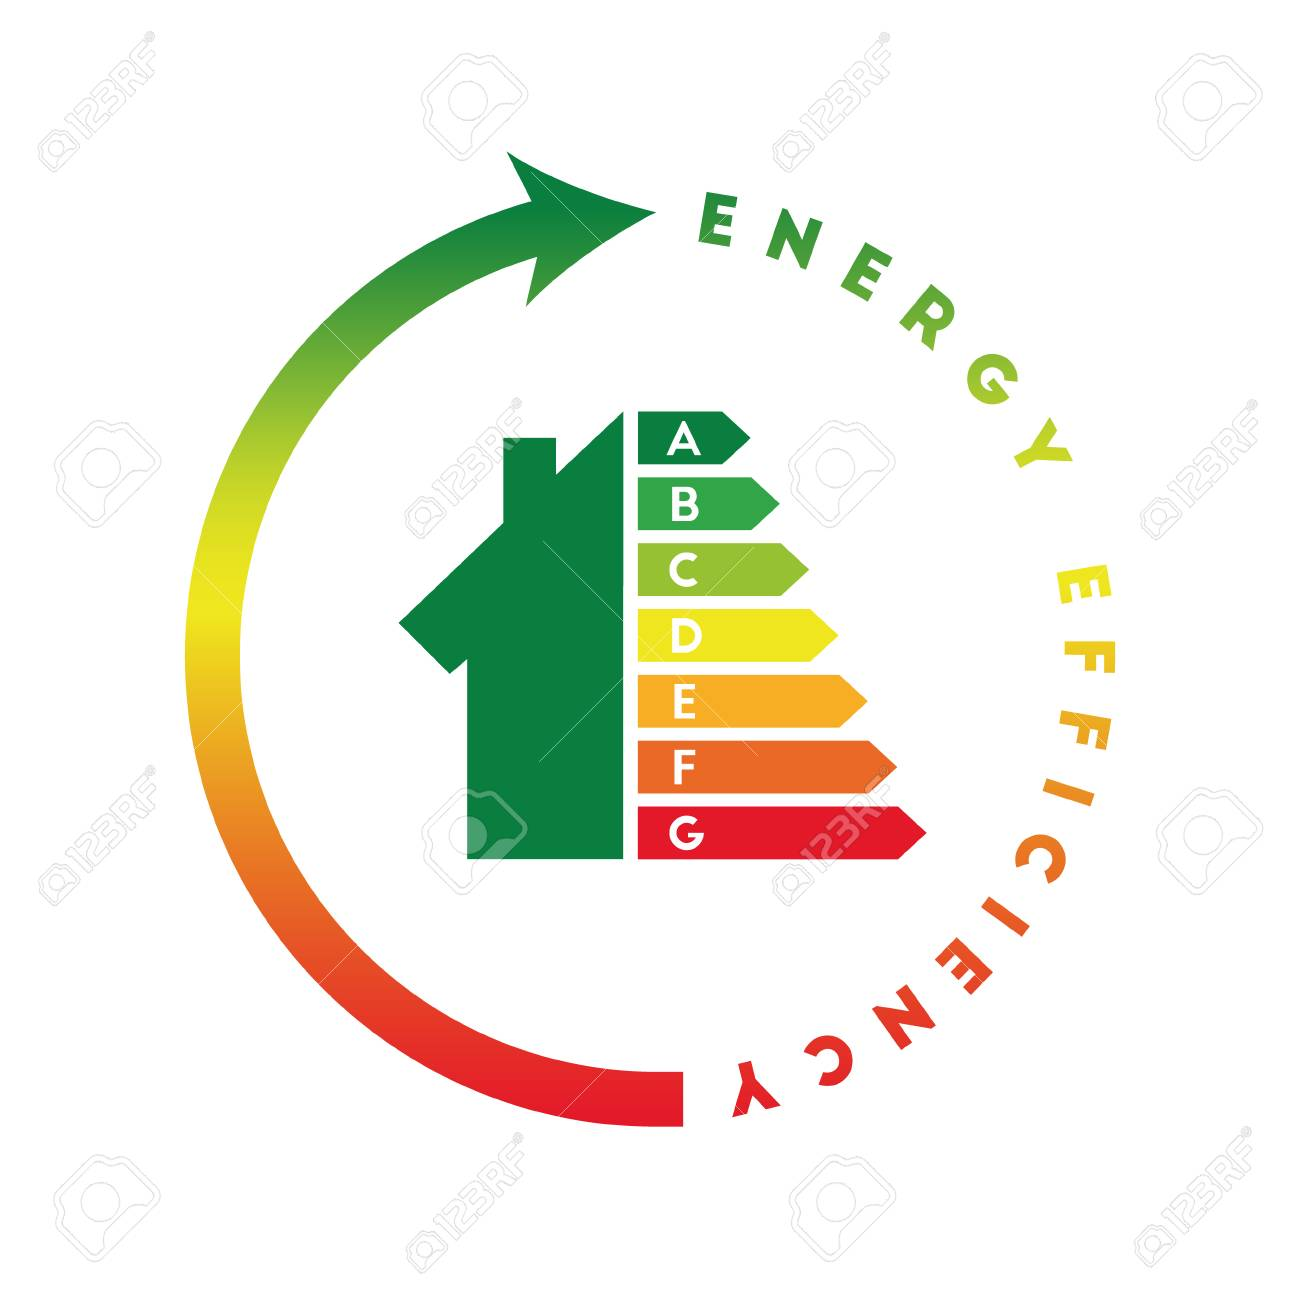 Energy Efficiency Class Concept With House And Consumption Bar Stock Vector    76501481